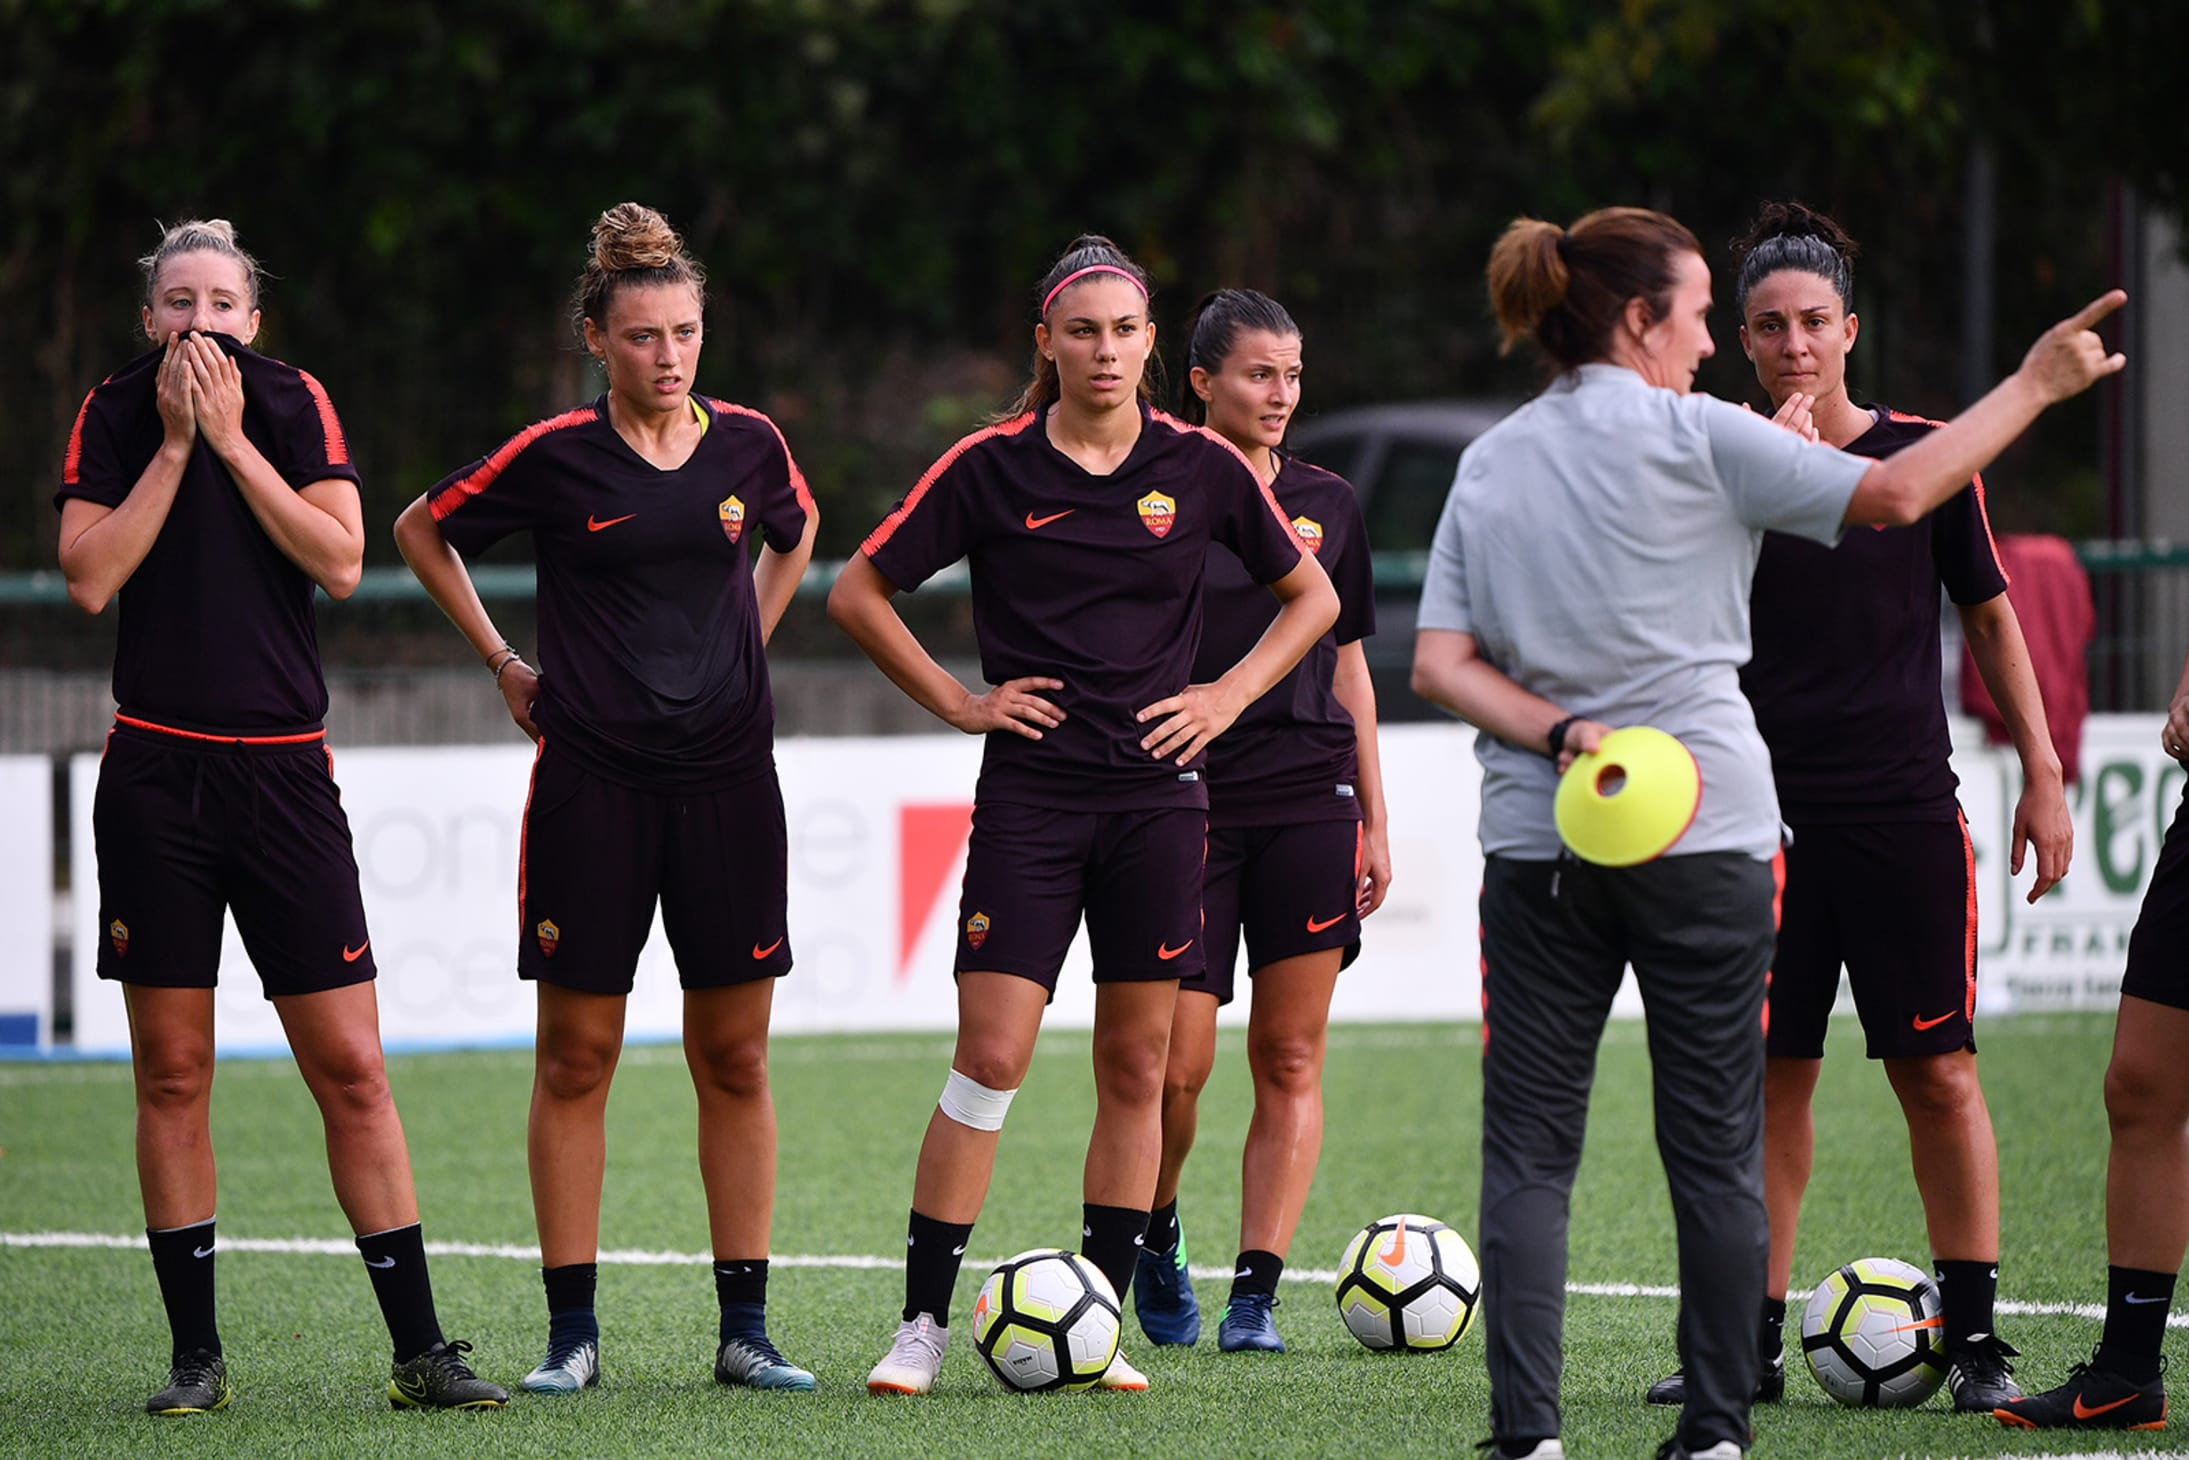 Asroma Calendario.As Roma Femminile